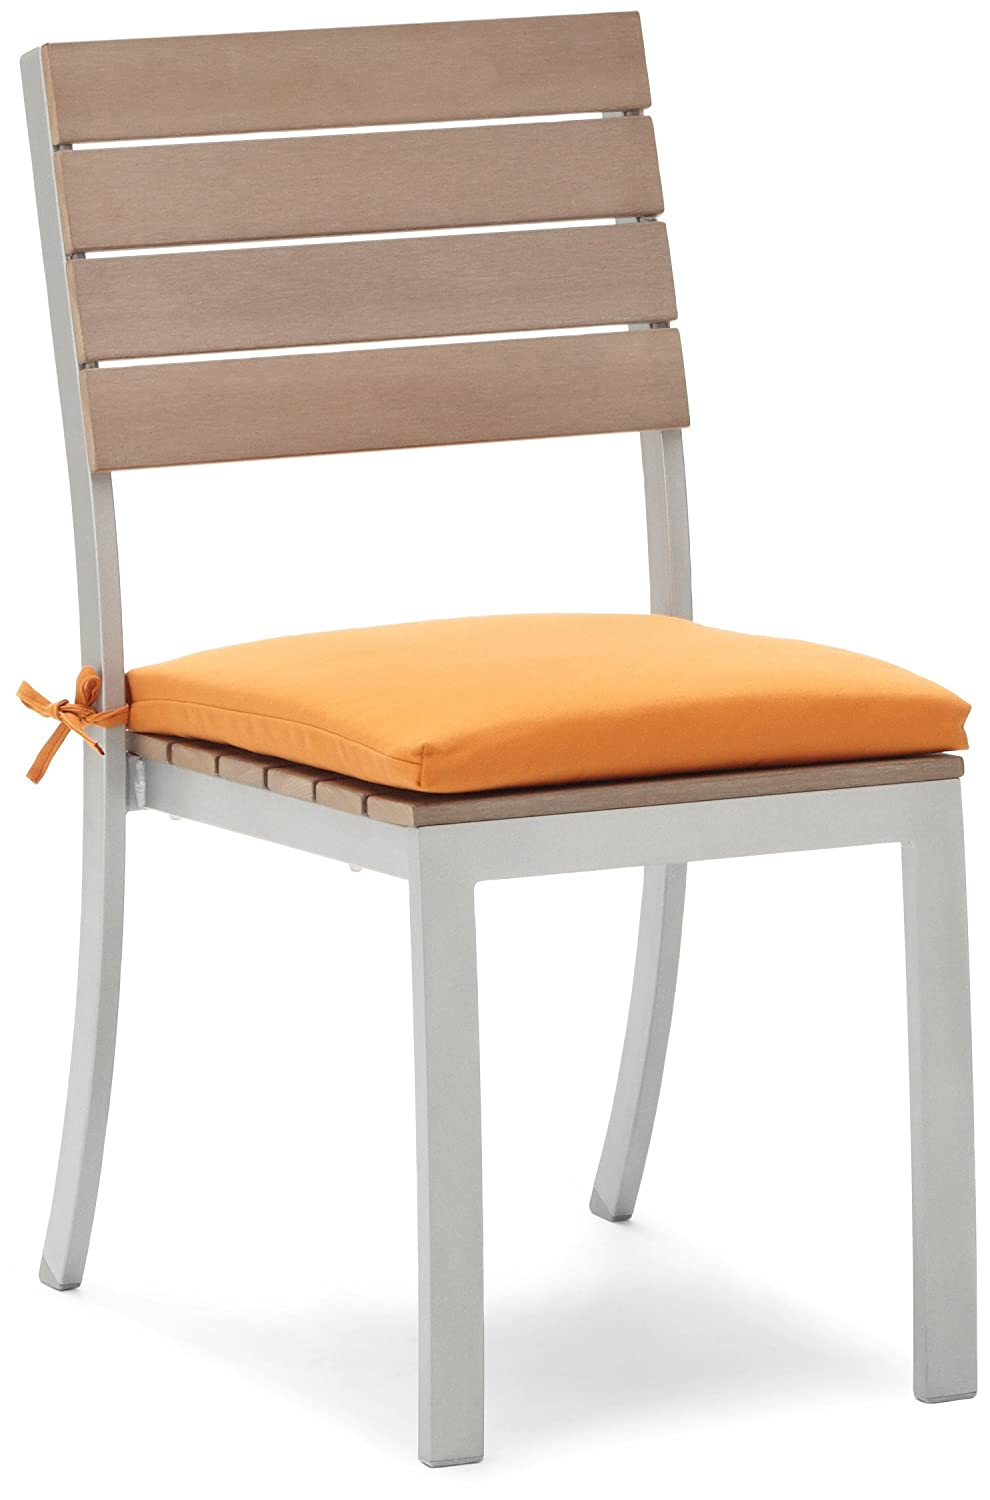 Dining Armless Chair Cushion Reversible Polyester Fabric Outdoor Solid Tanger